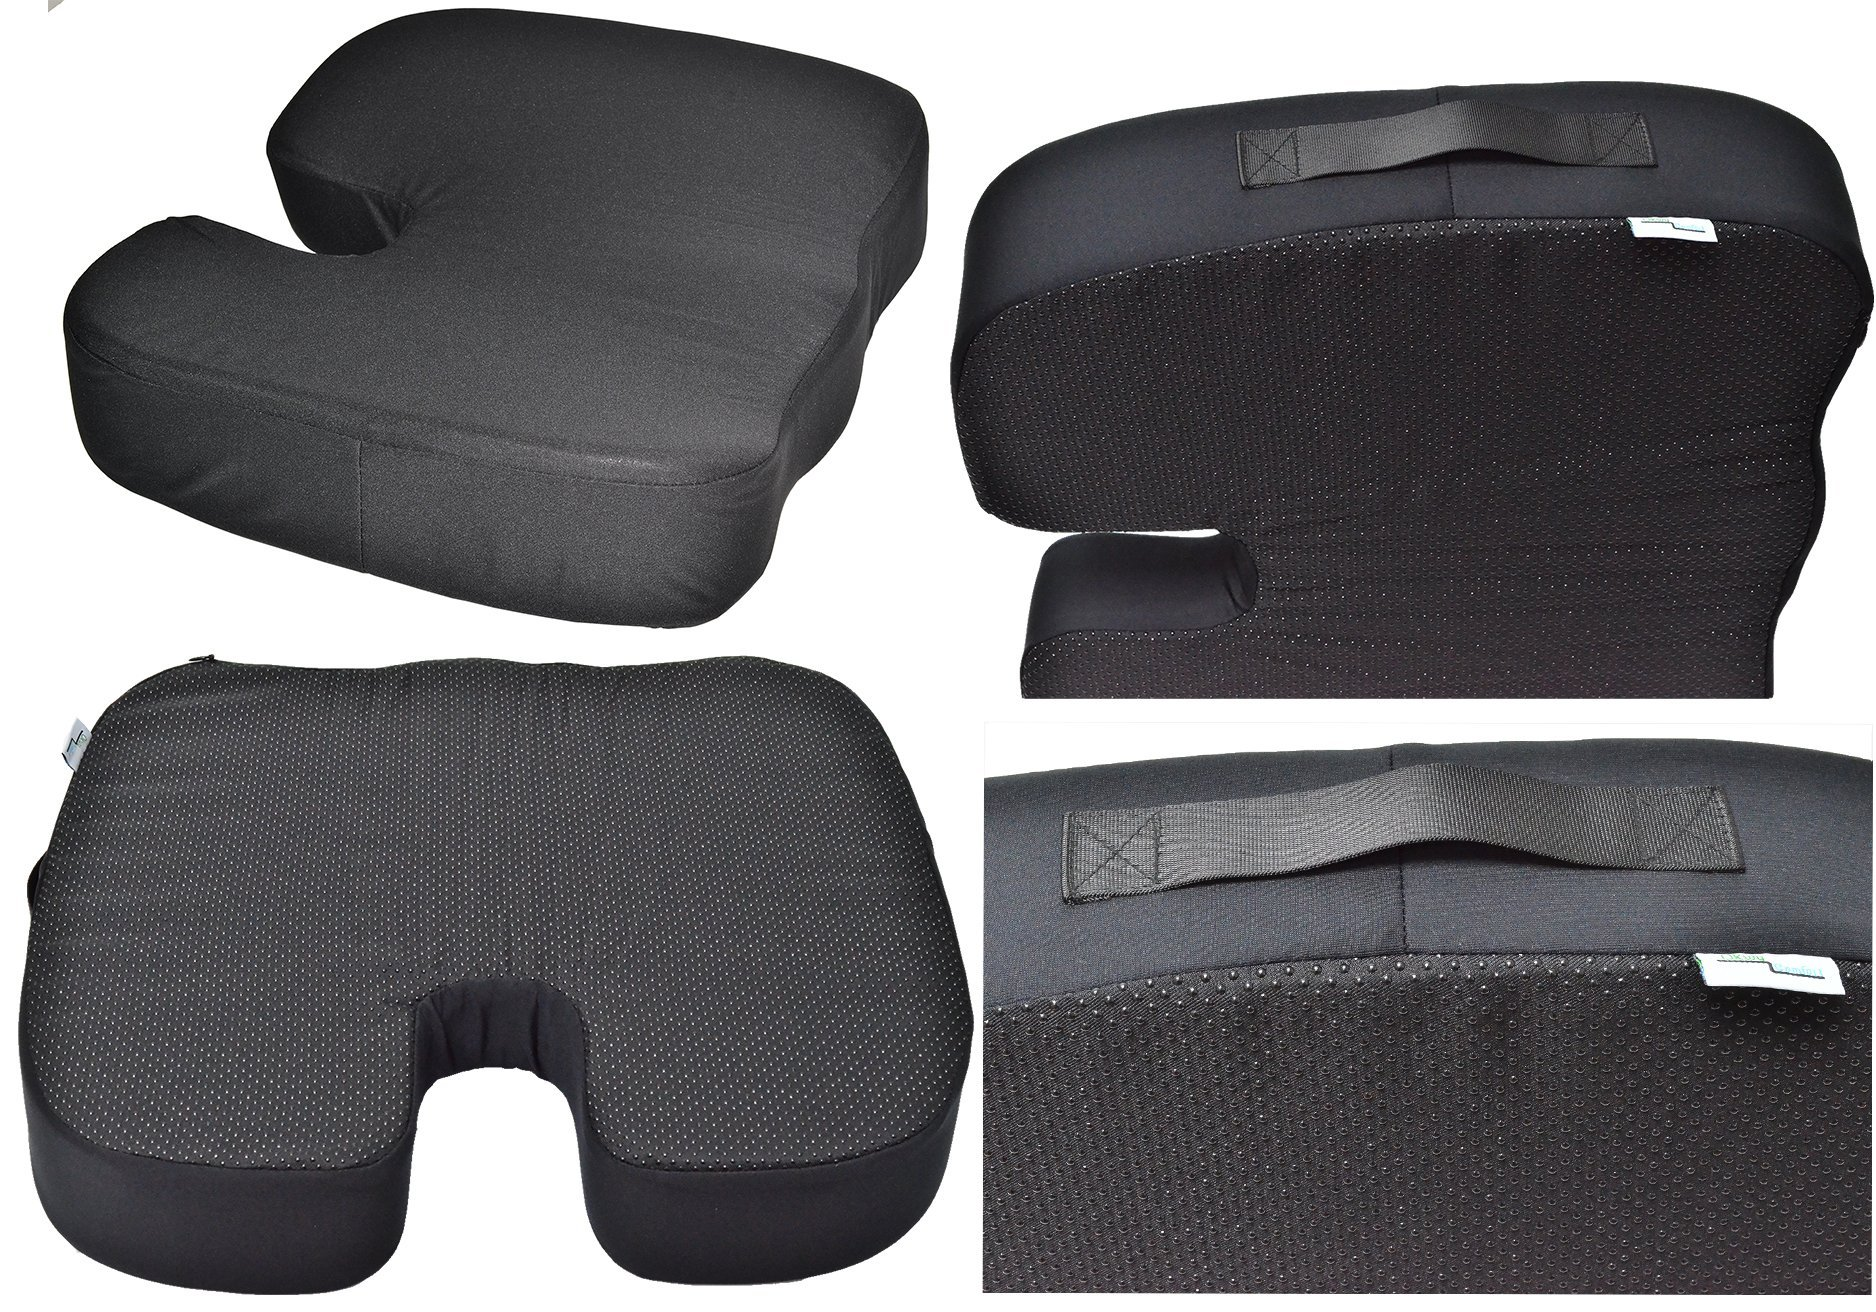 OKWU COMFORT 4 Inches Thick Coccyx Orthopedic Pressure Relieving Memory Foam Seat Chair Car Pad Cushion Non Skid Slip, Black Large Thick Firm 18x16x4